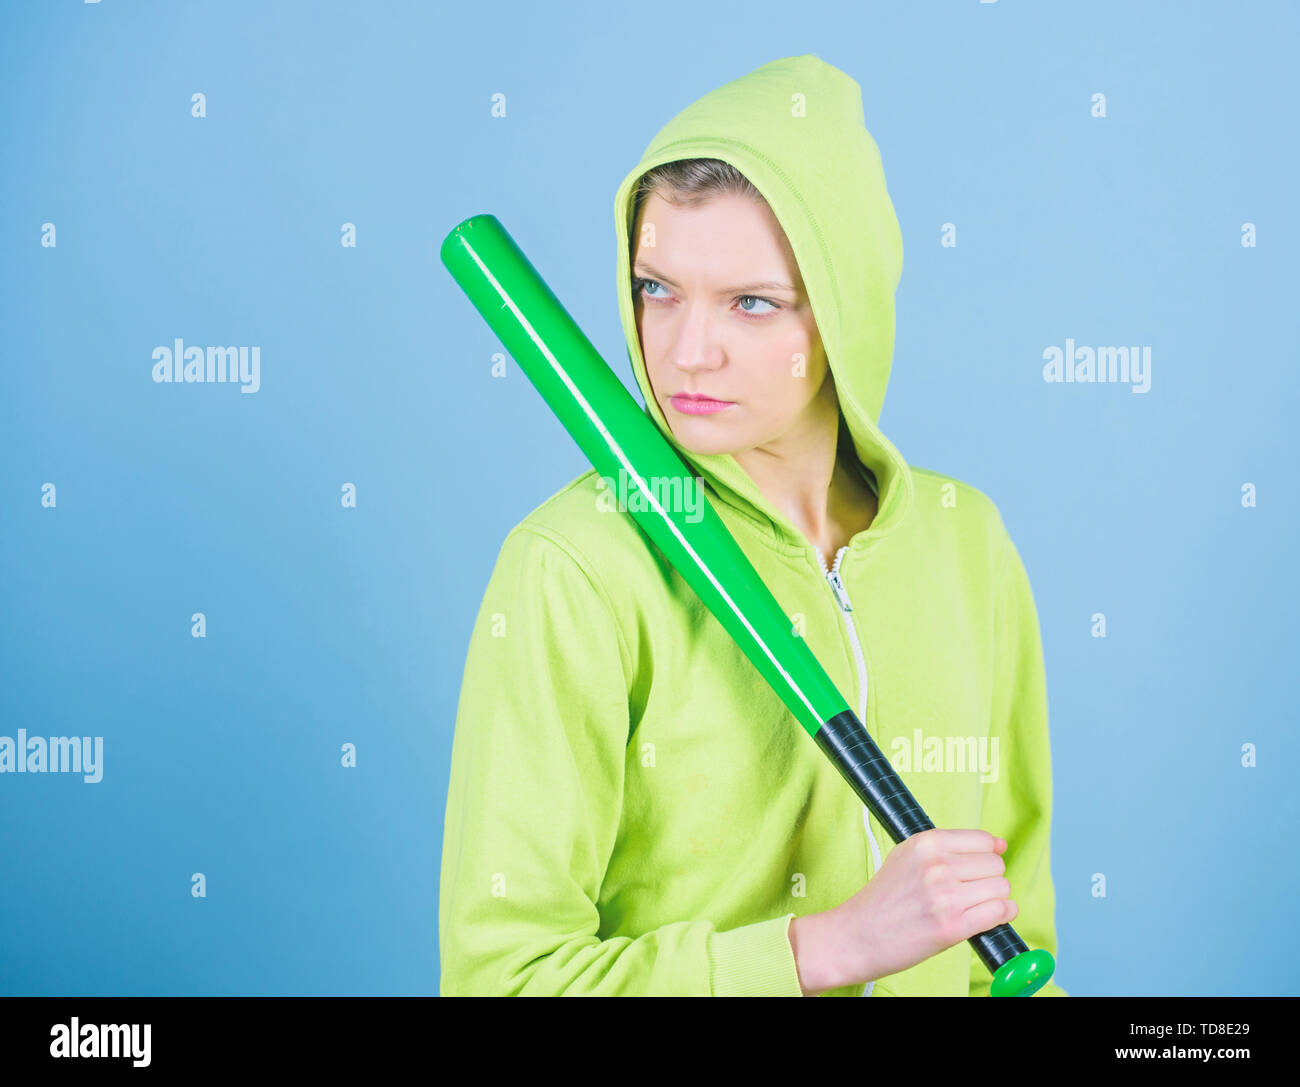 Sport equipment. Athletic fitness. woman workout with baseball bat. Fighting with aggression. aggressive woman with bat. Street life. Sporty girl figh - Stock Image